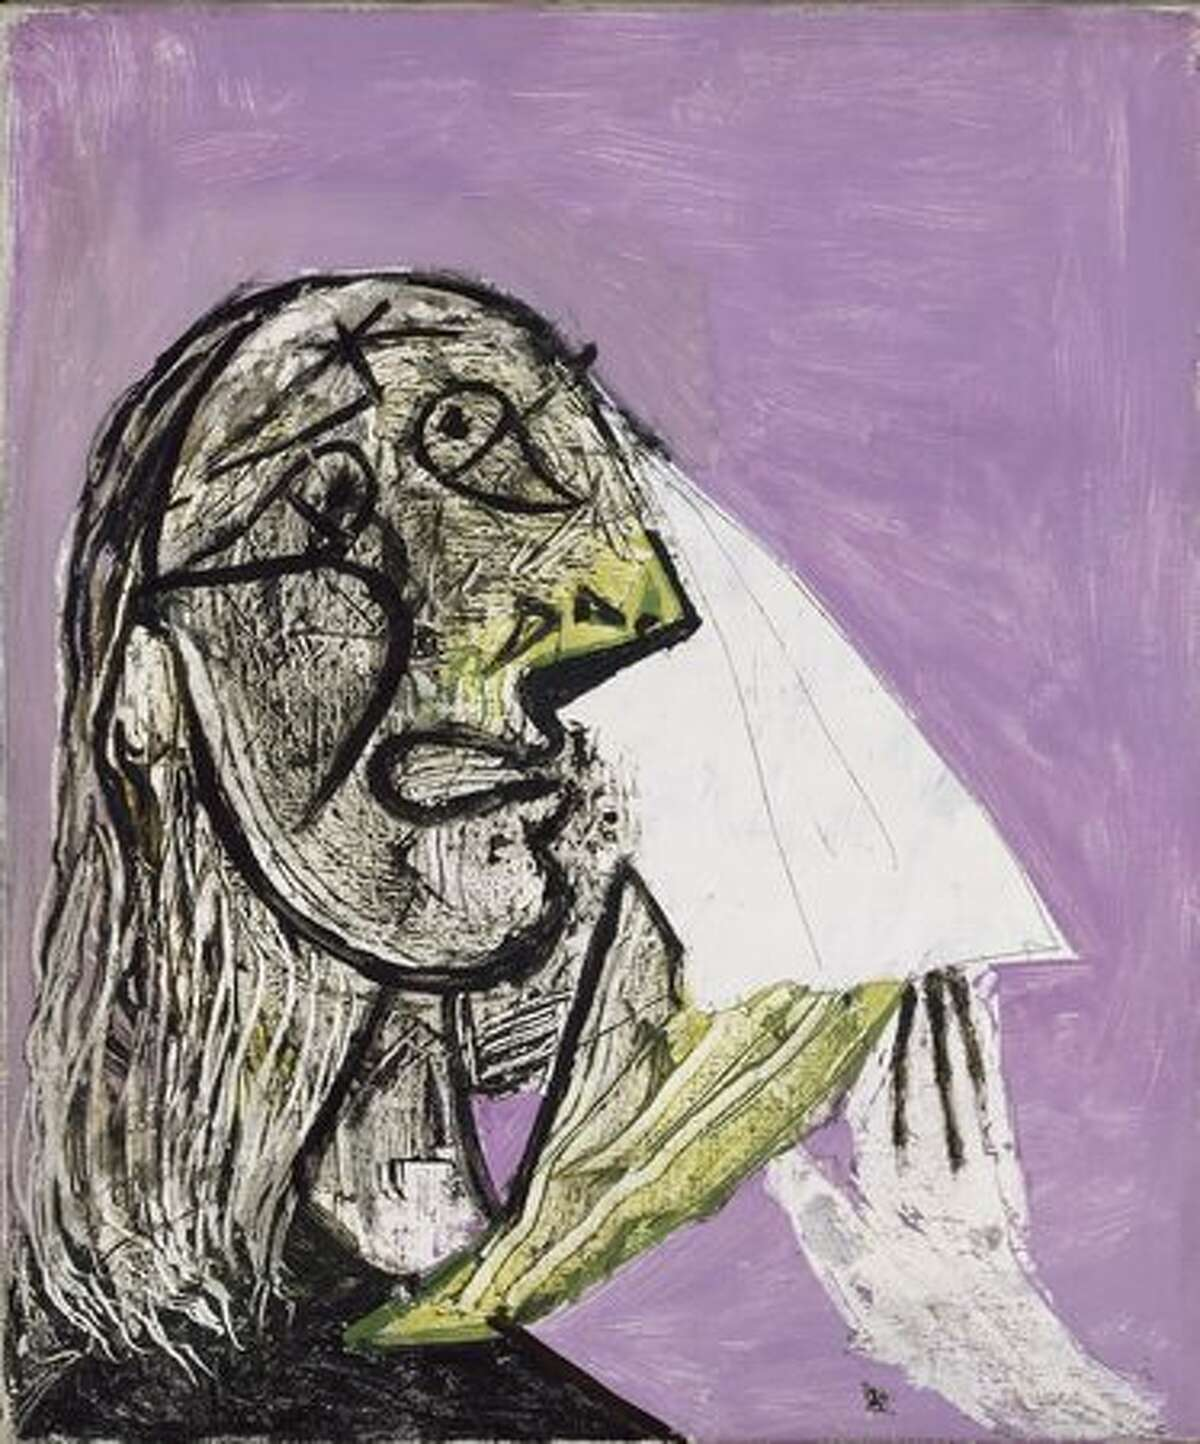 Weeping Woman, 1937. Oil on canvas, 55.3 x 46.3 cm.